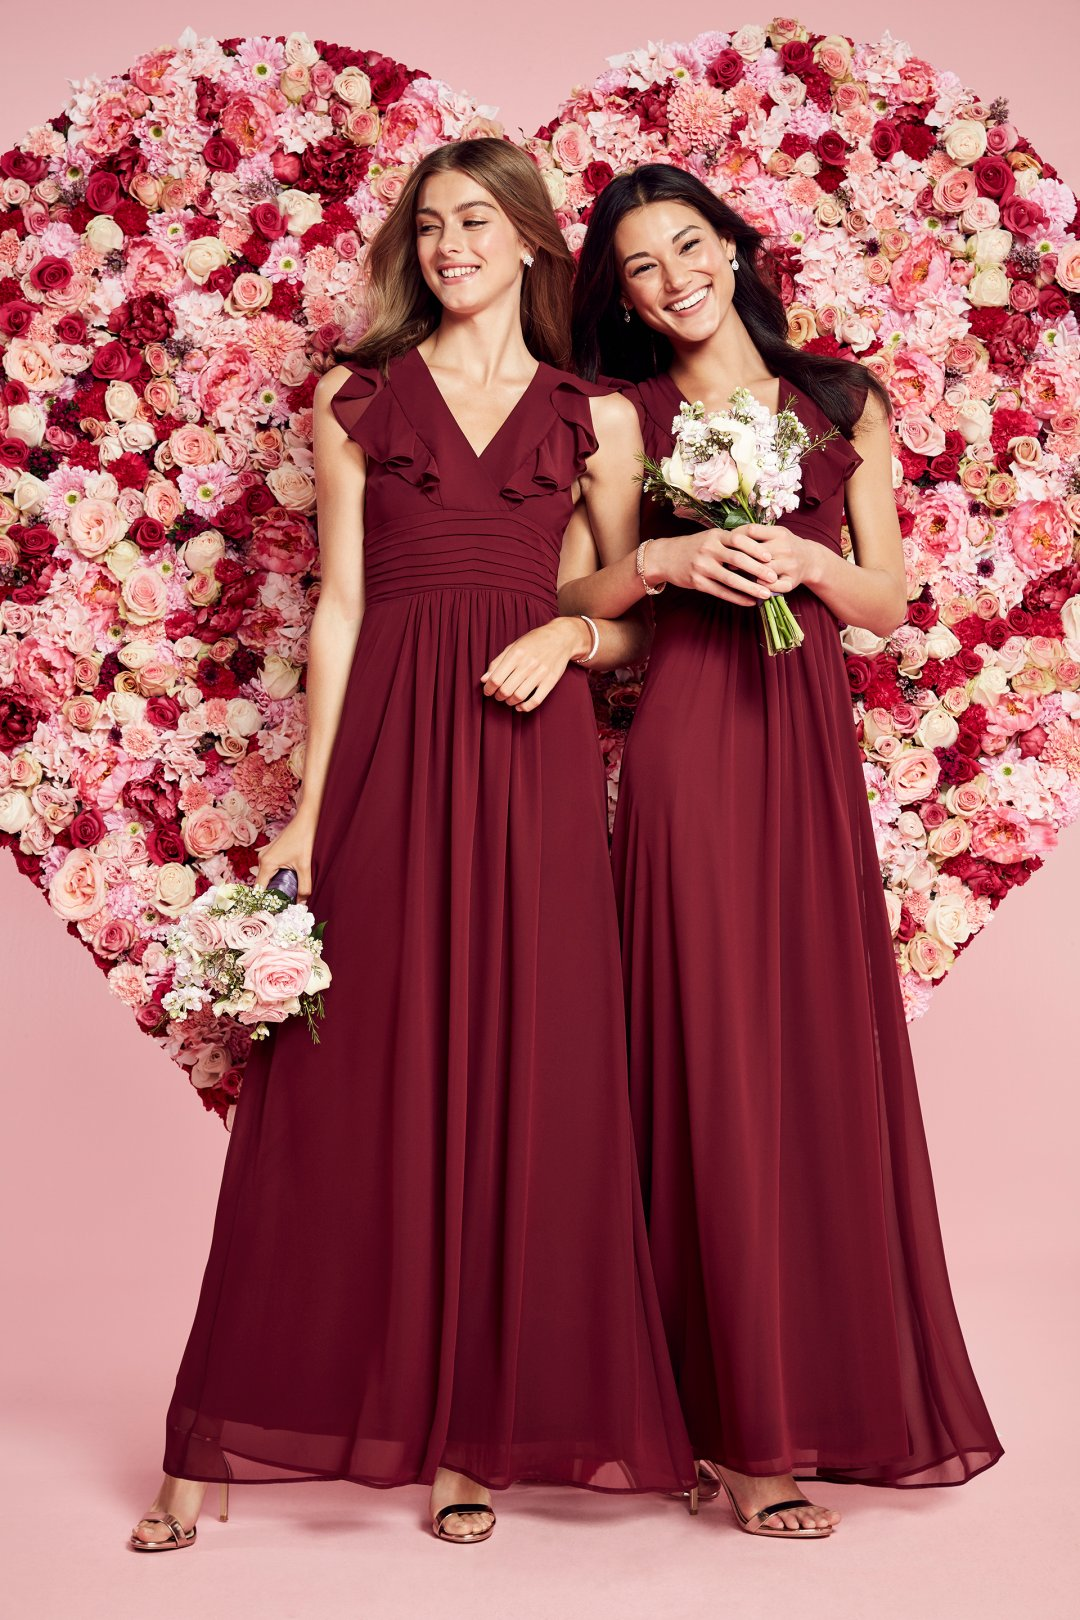 a99555ff9dd Curated image with Ruffle Sleeve Open Back Chiffon Bridesmaid Dress -  Merlot (Red)